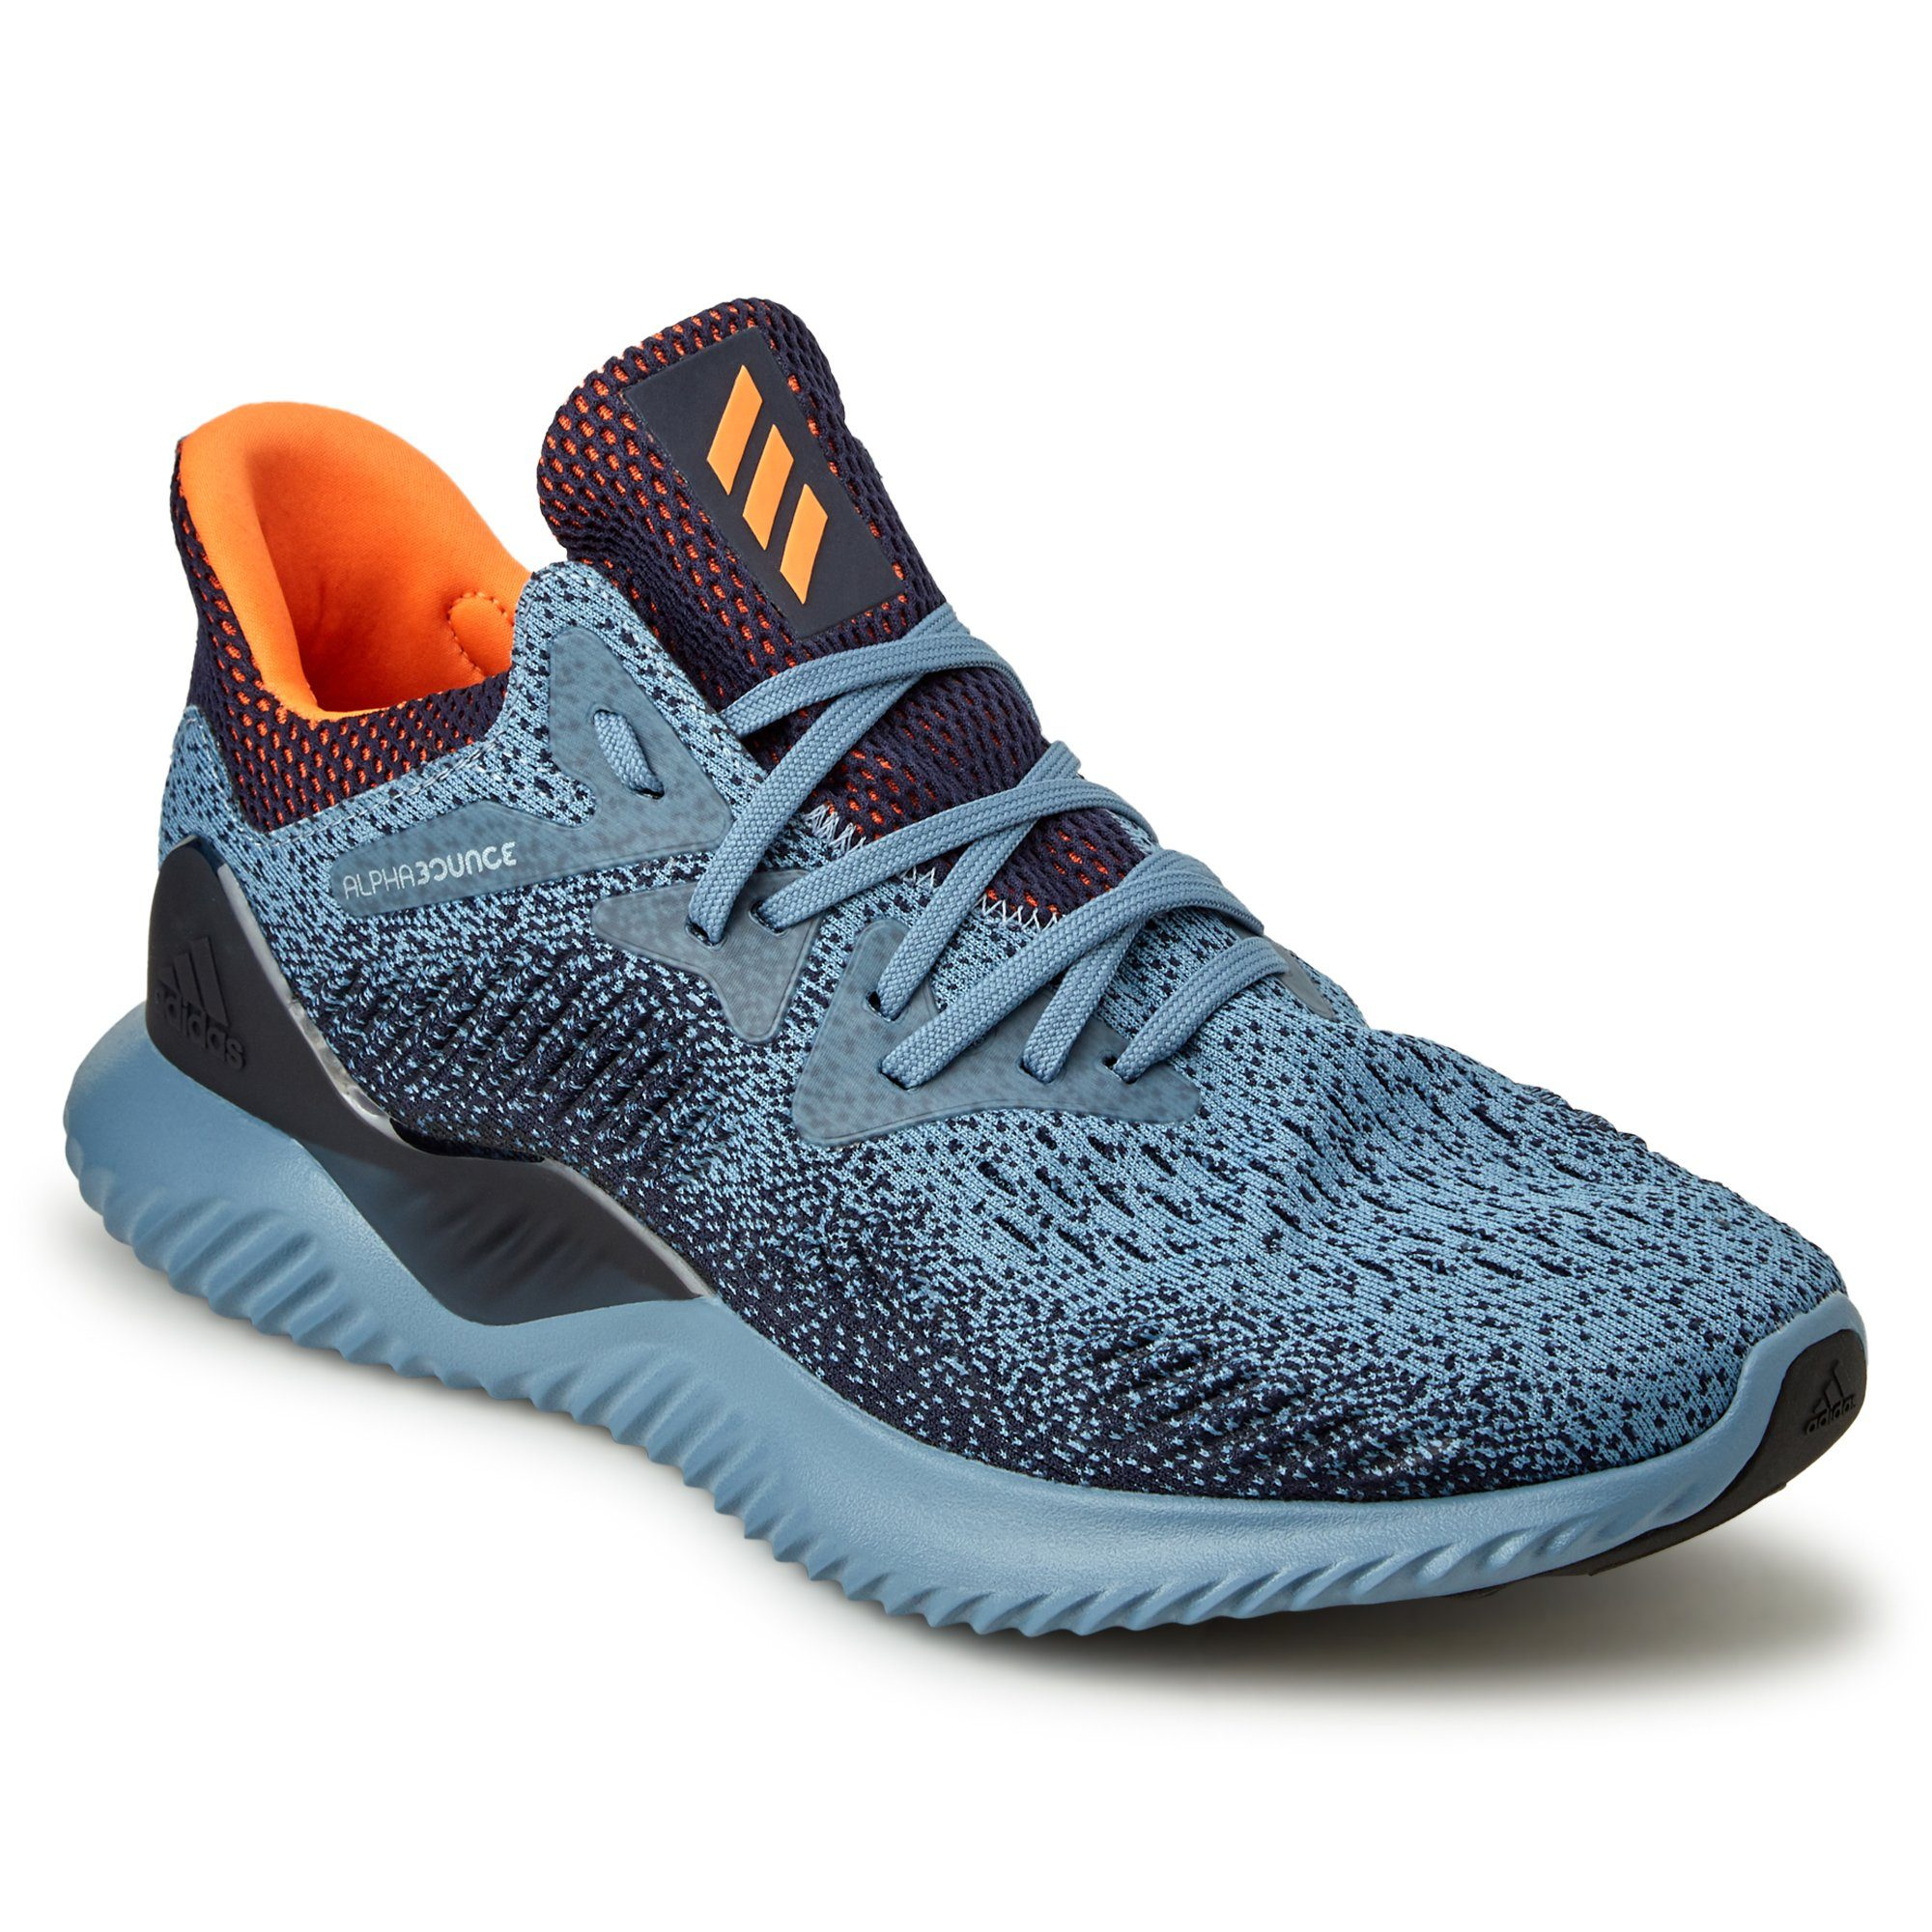 Adidas Men's Alphabounce Beyond Shoes - Raw green/HiResOrange/Legend Ink Footwear Adidas  (2012420309051)